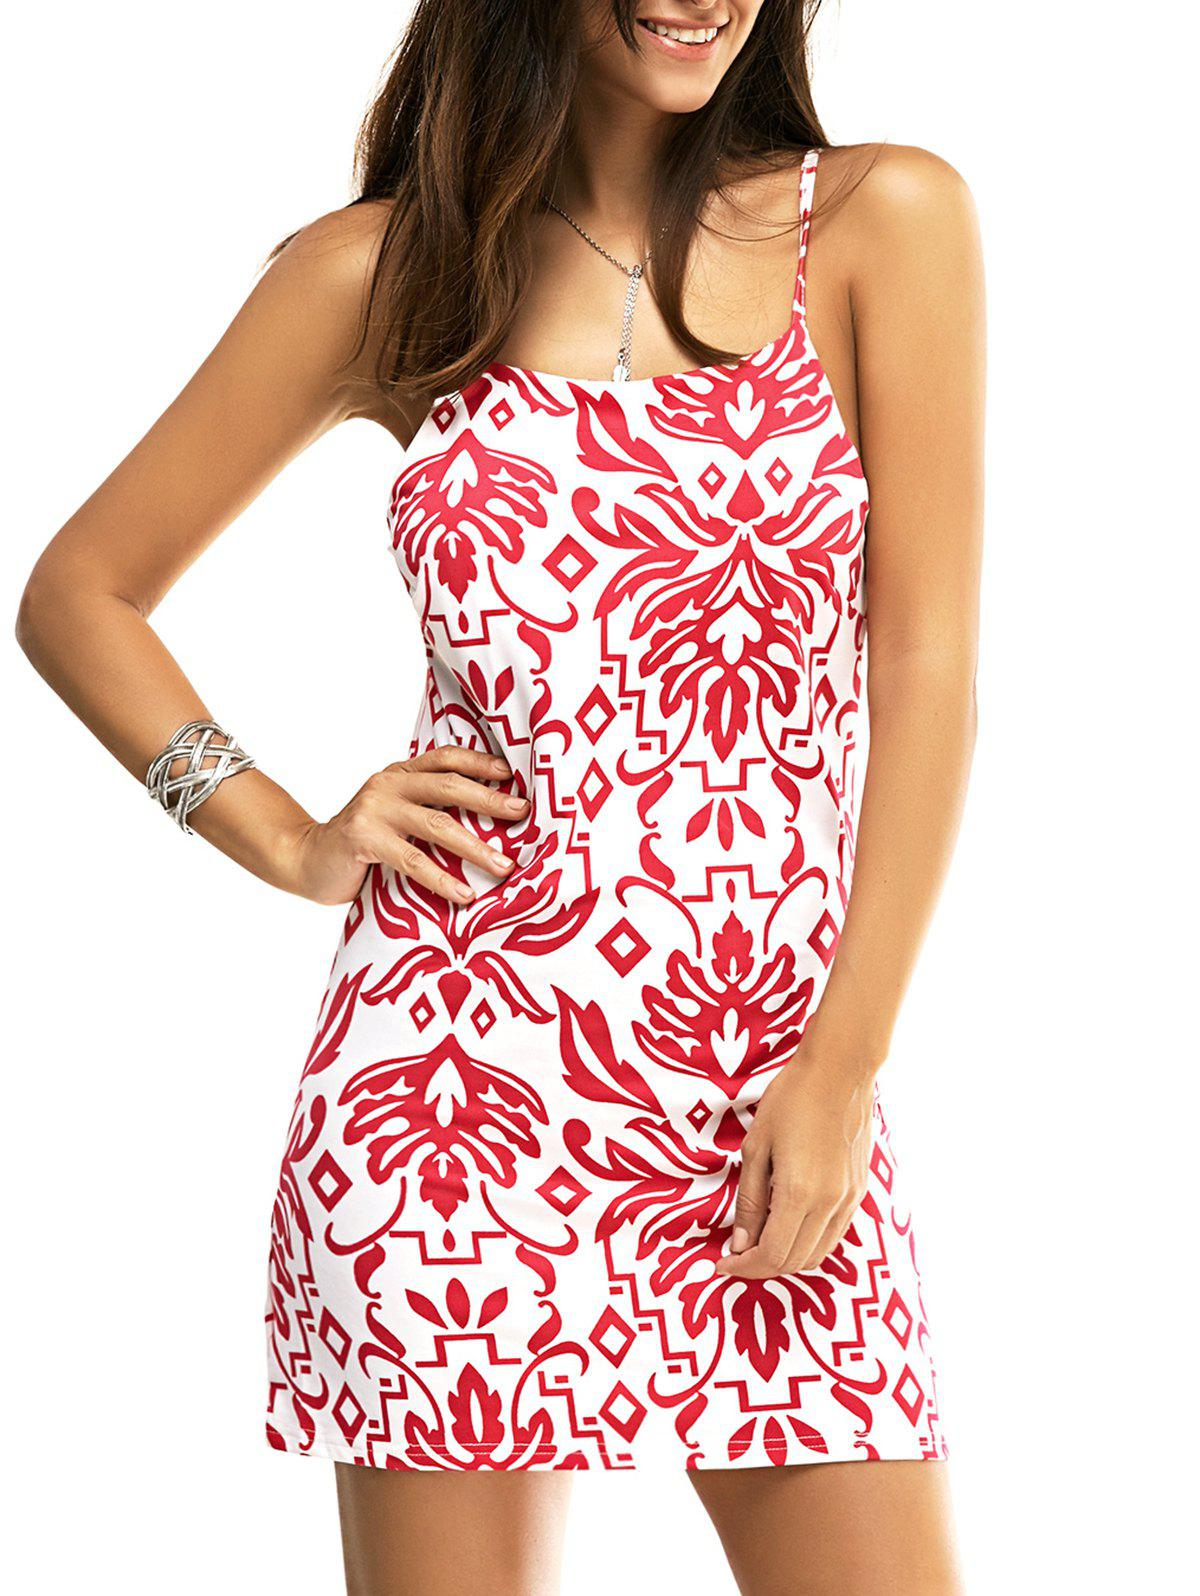 Fashion Spaghetti Strap Paisley Floral Print Mini Dress - RED/WHITE XL